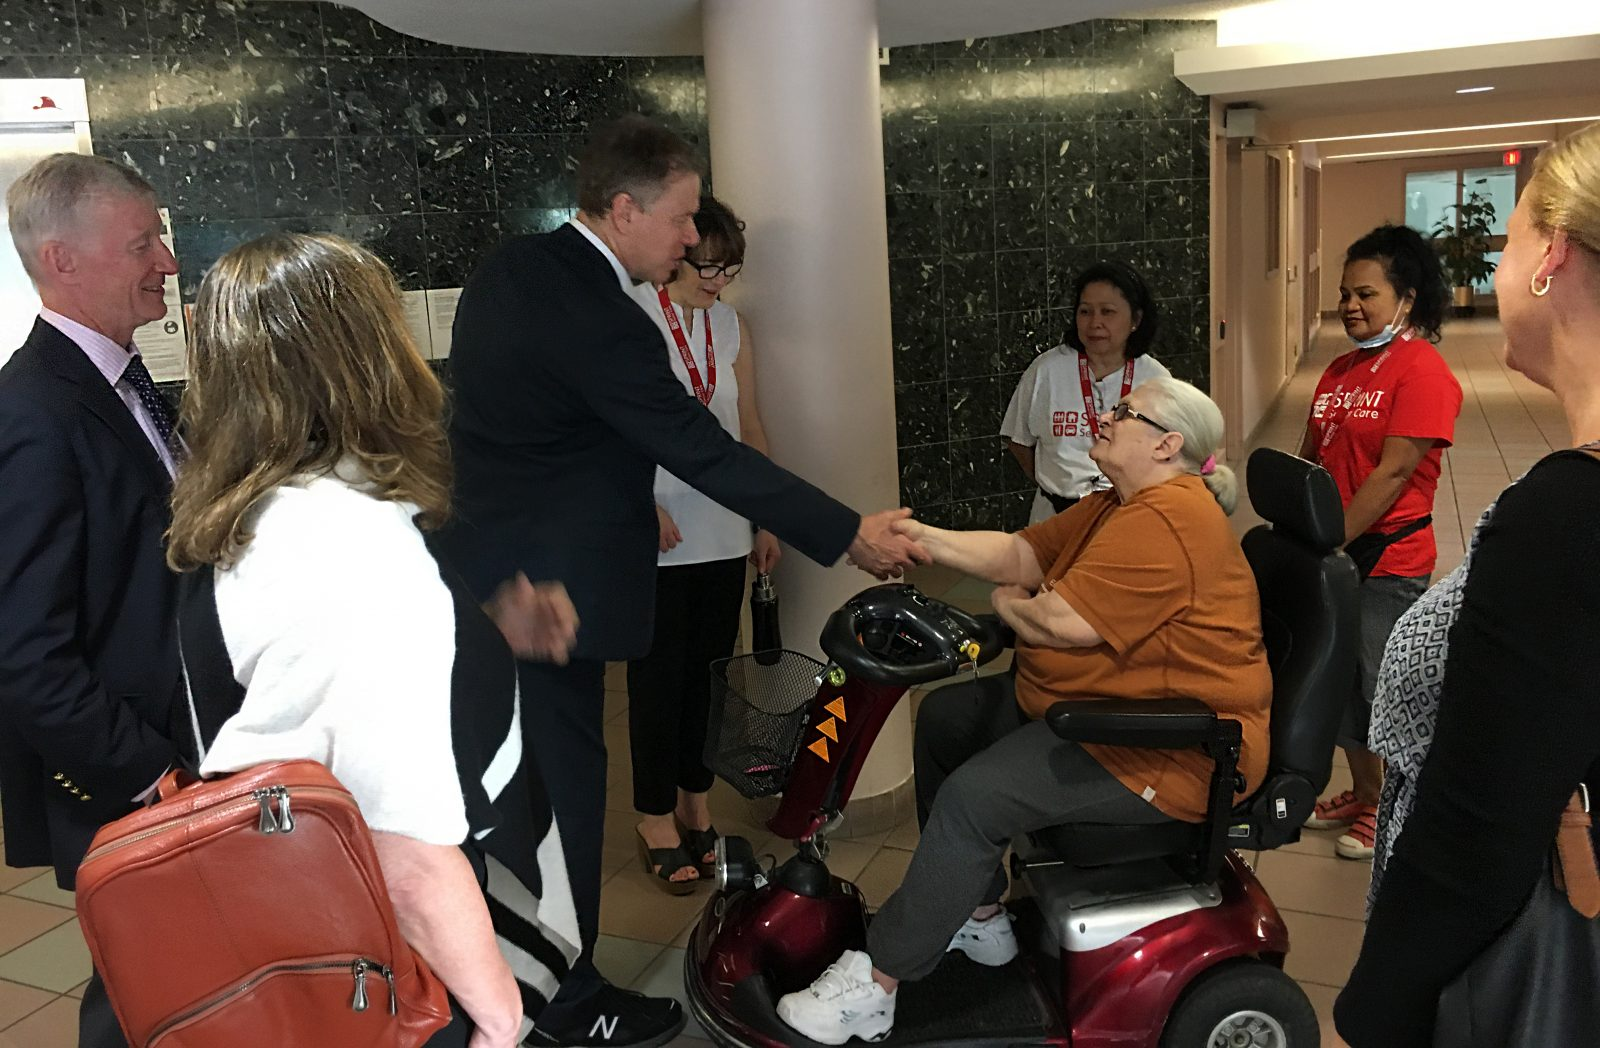 Sunnybrook CEO shaking hands with senior